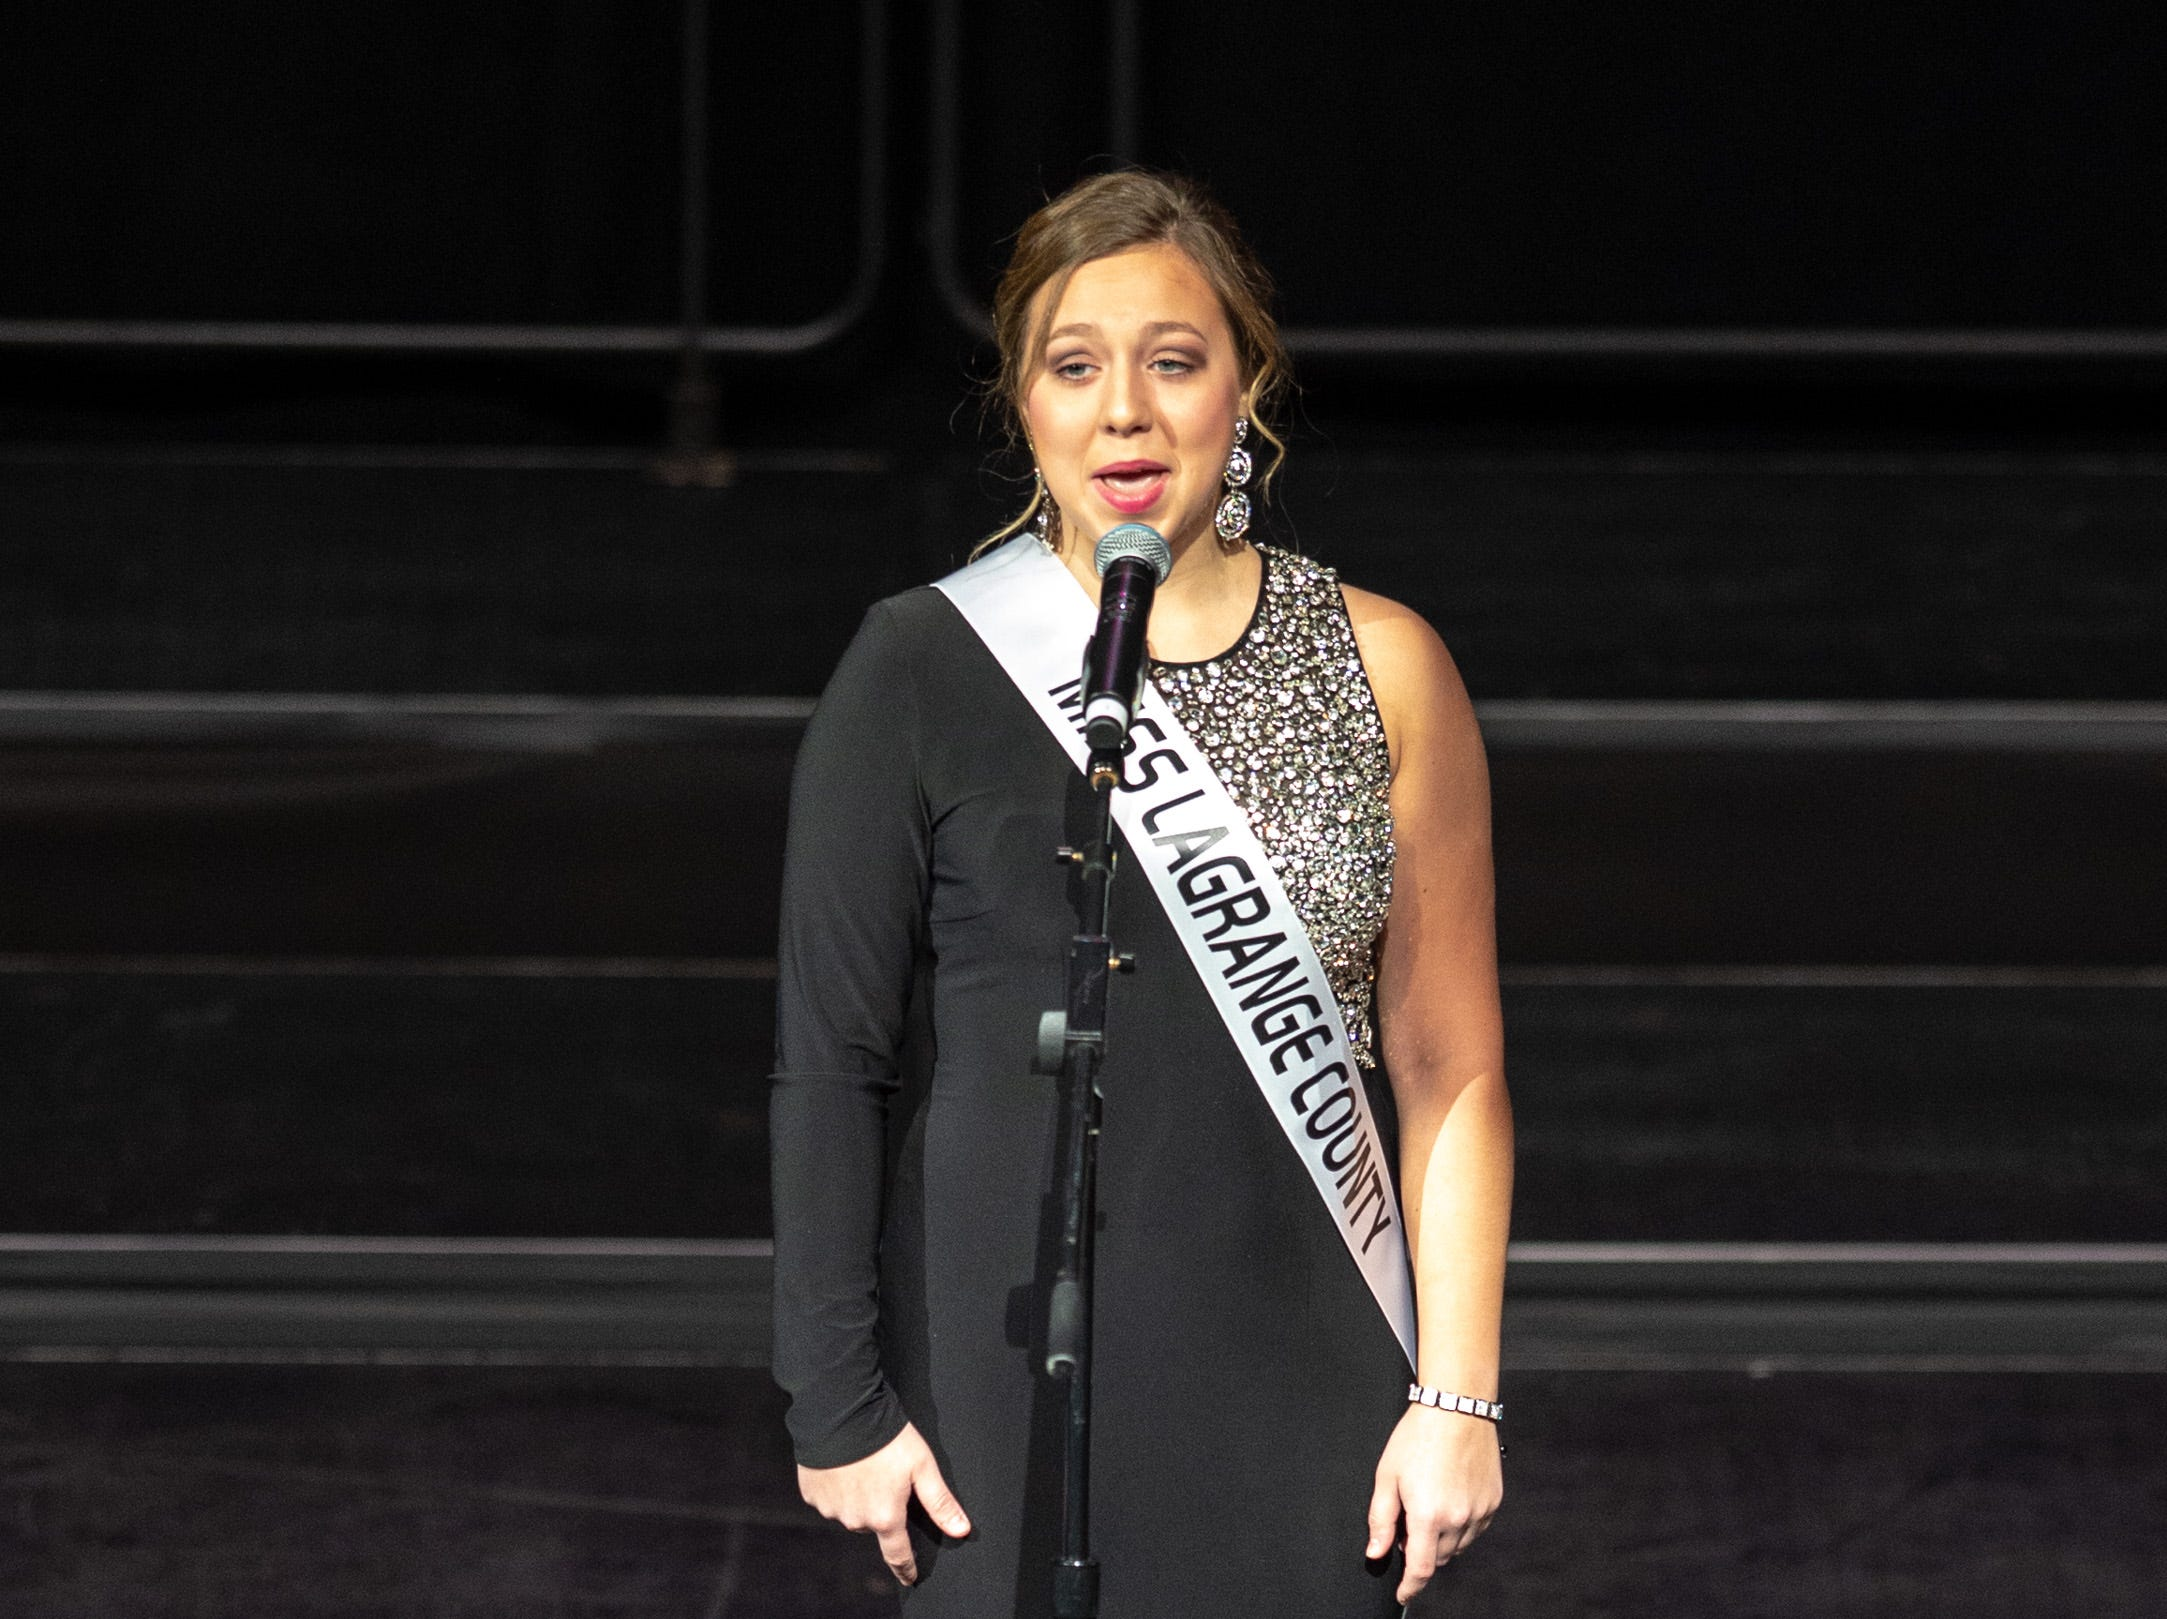 Miss LaGrange County, Sydney Rathburn, introduces herself during the 61st Indiana State Fair Queen Pageant at the Indiana State Fairgrounds in Indianapolis on Sunday, Jan. 6, 2019.